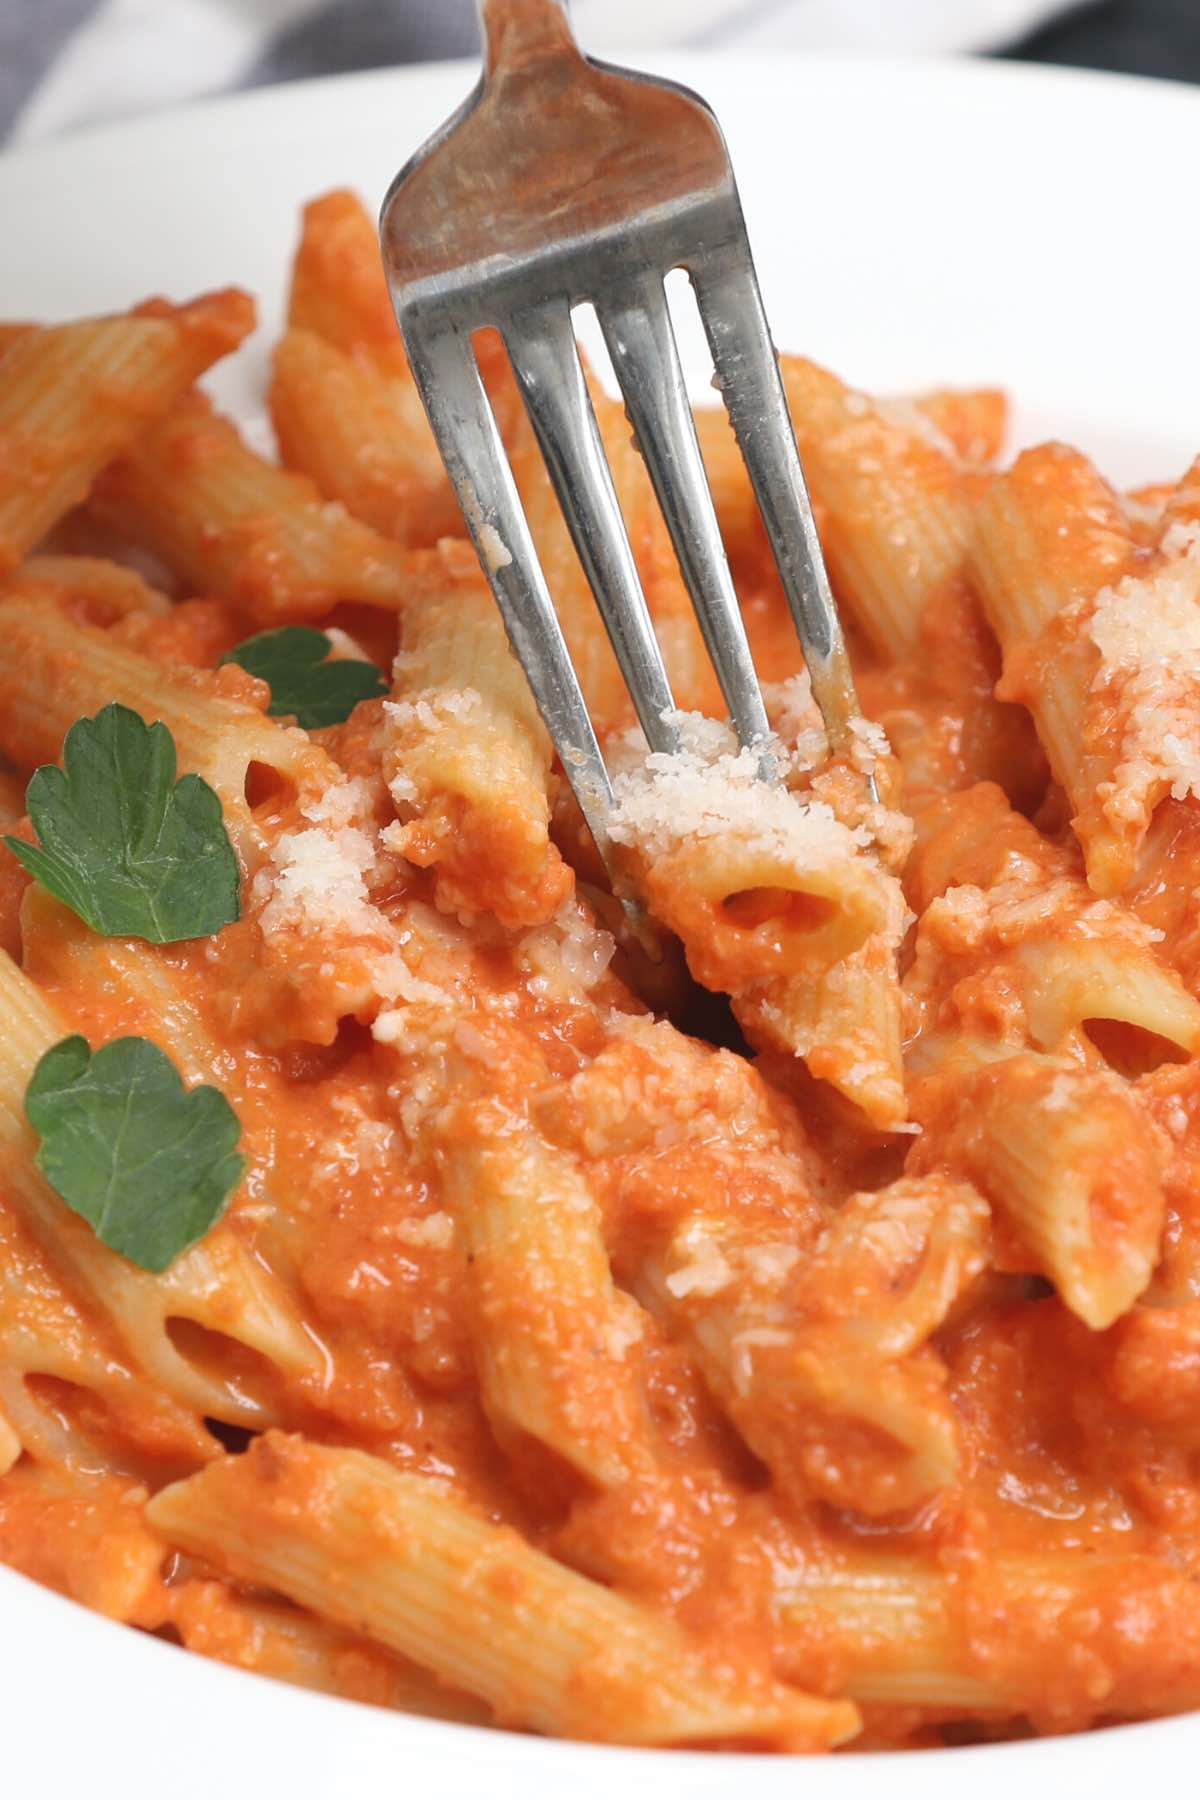 A fork digging into homemade penne alla vodka